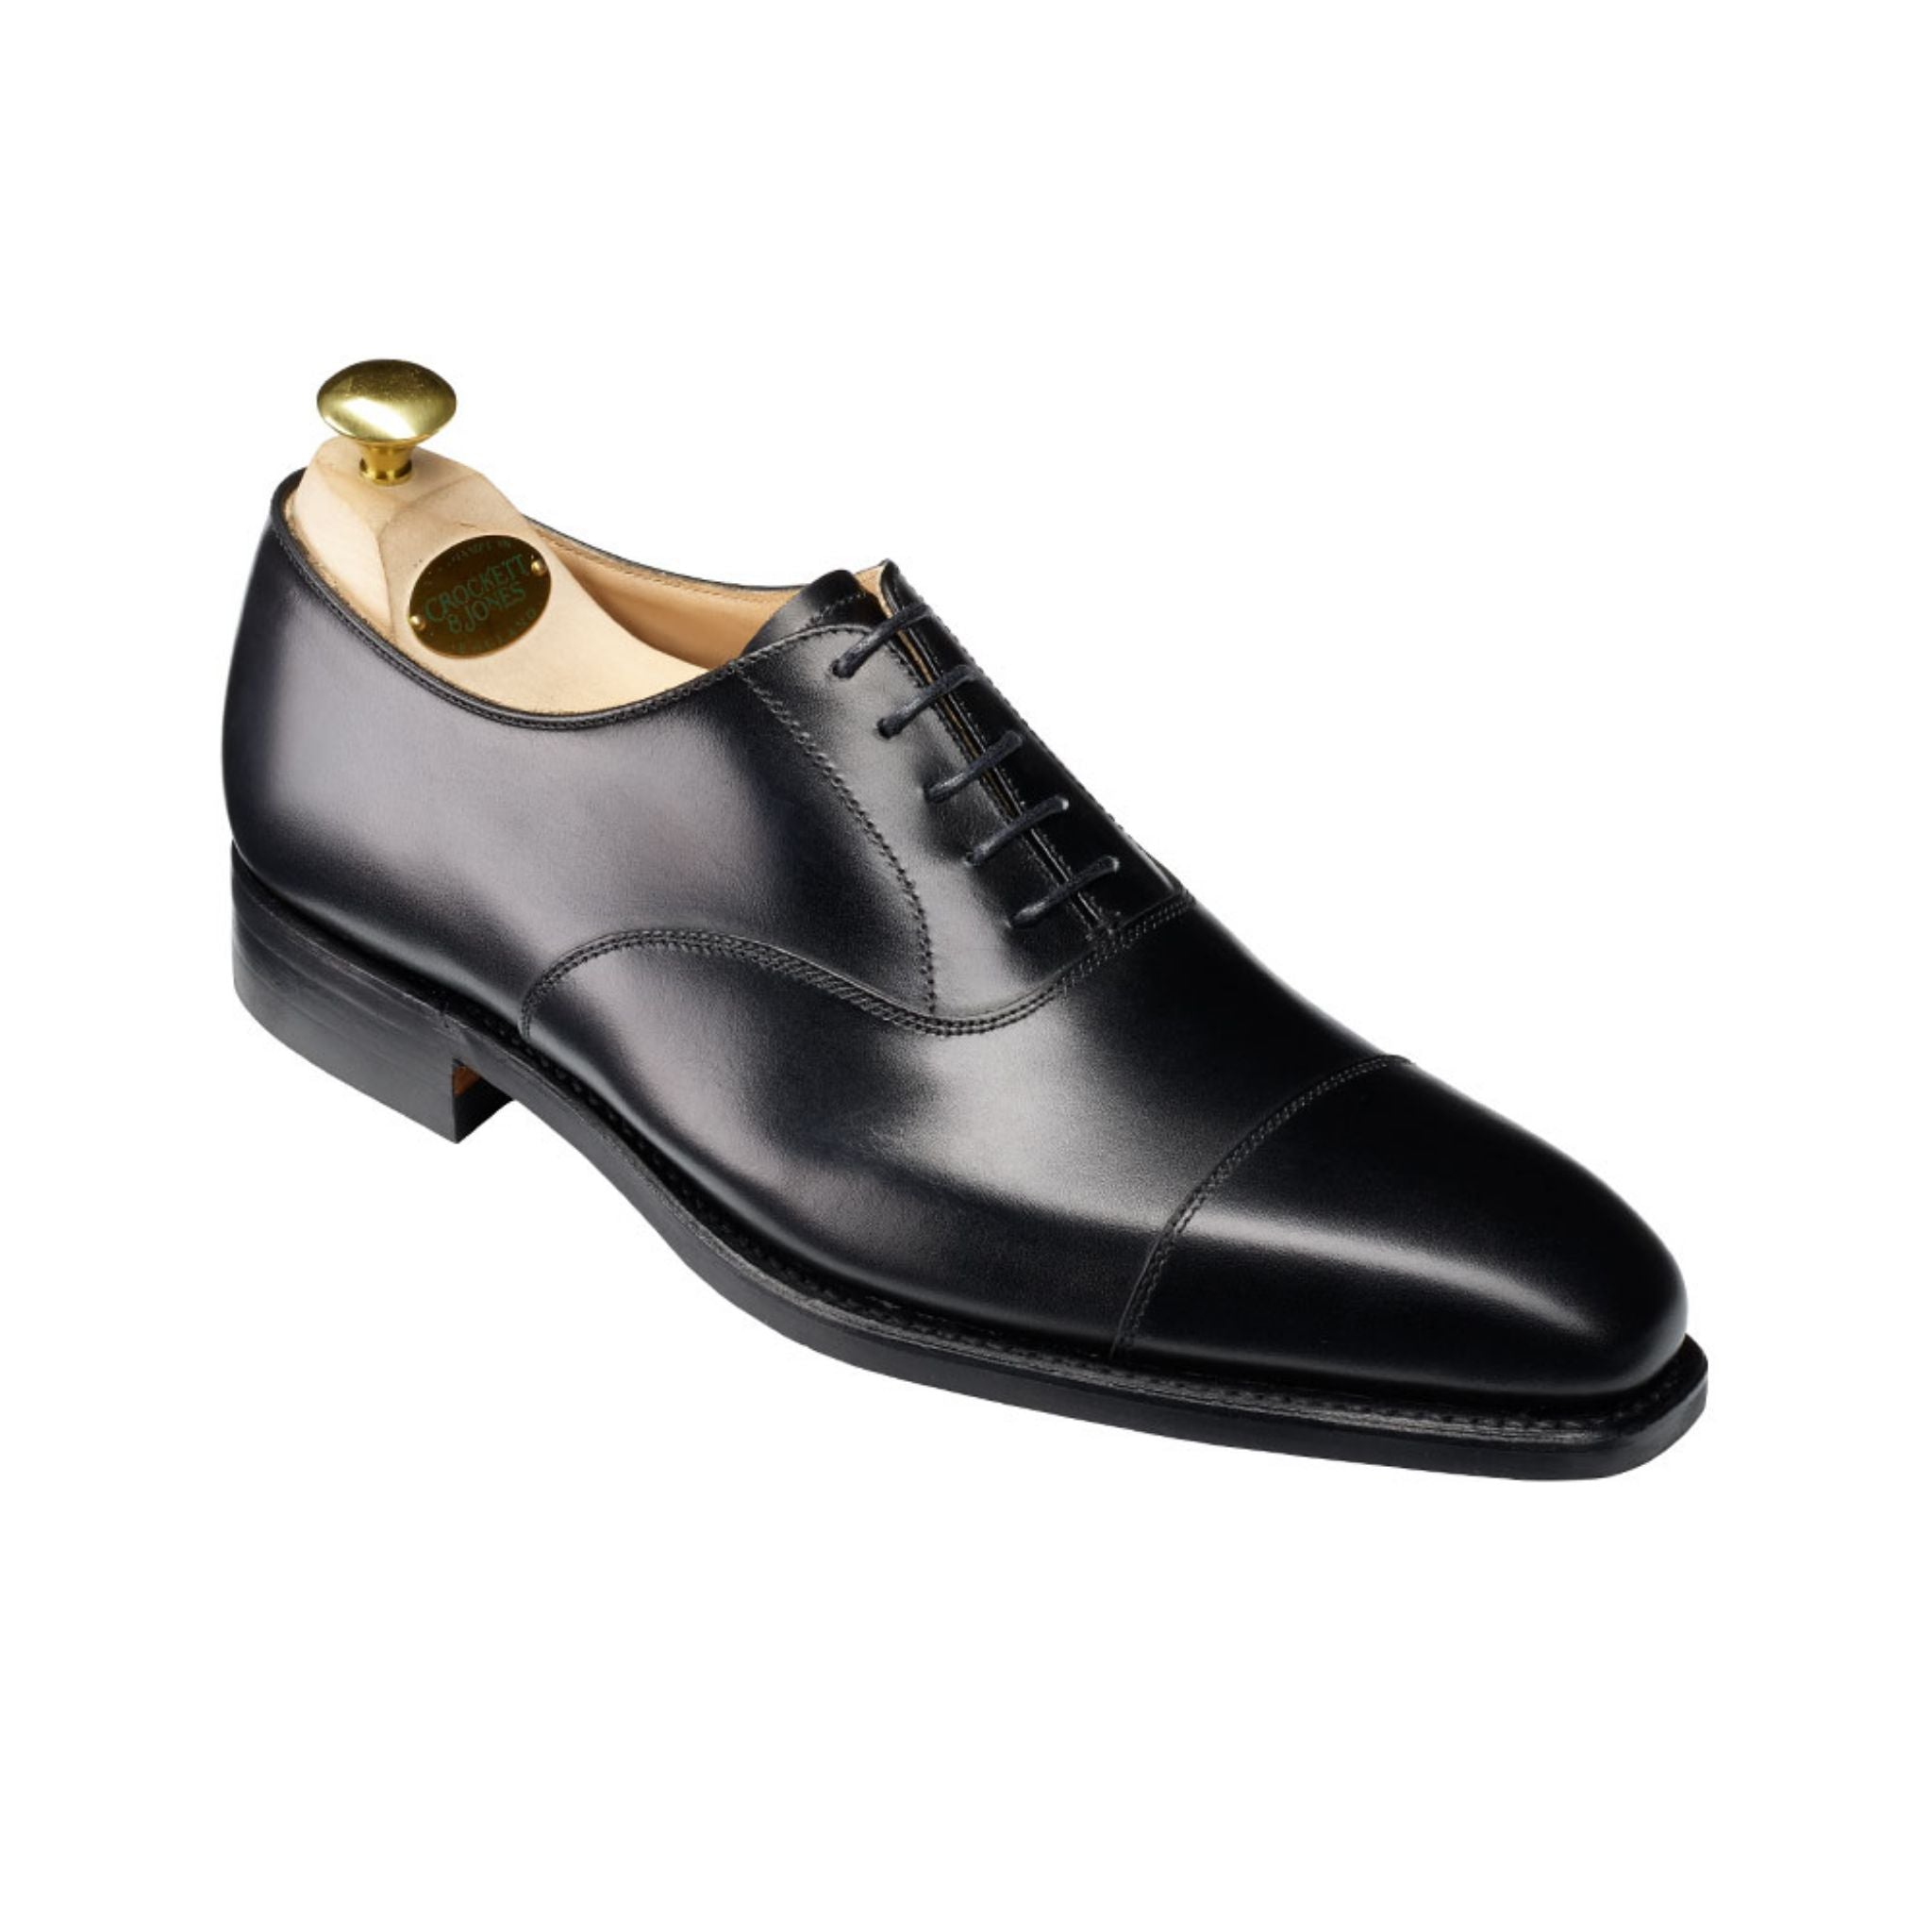 Black cap toe oxfords - Crockett & Jones Hallam